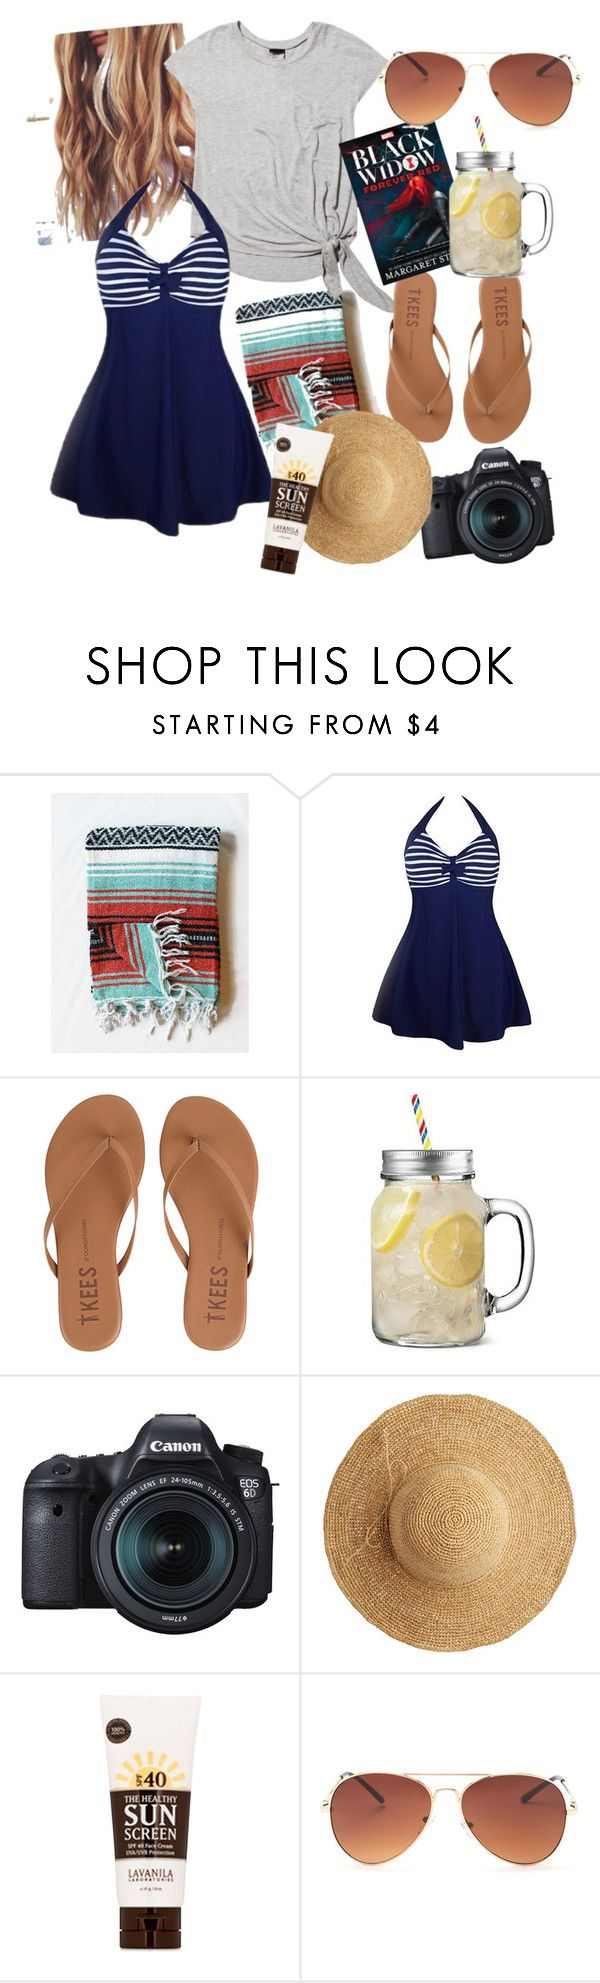 """""""Beach-ing time!"""" by nimas on Polyvore featuring Terez, Tkees, Eos, Flora Bella and Lavanila"""